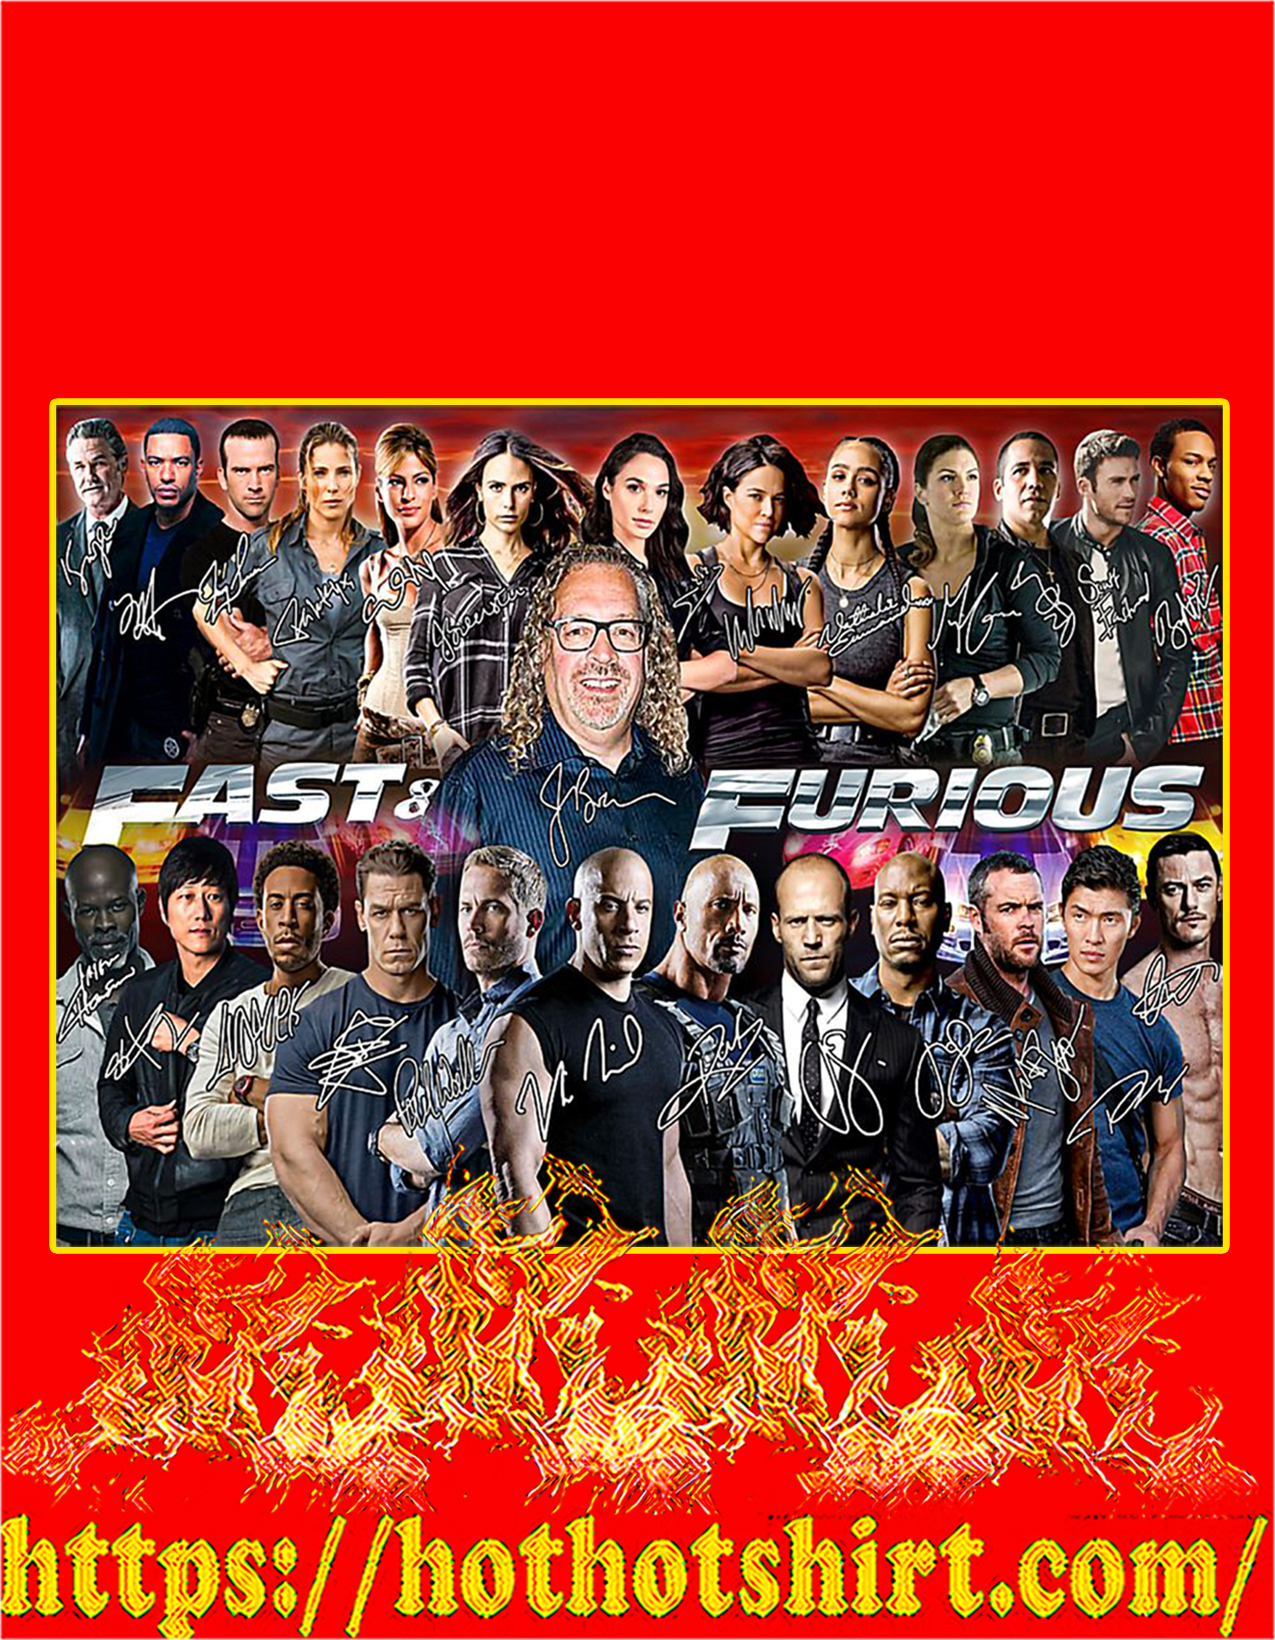 Fast and furious actor signature poster - A2